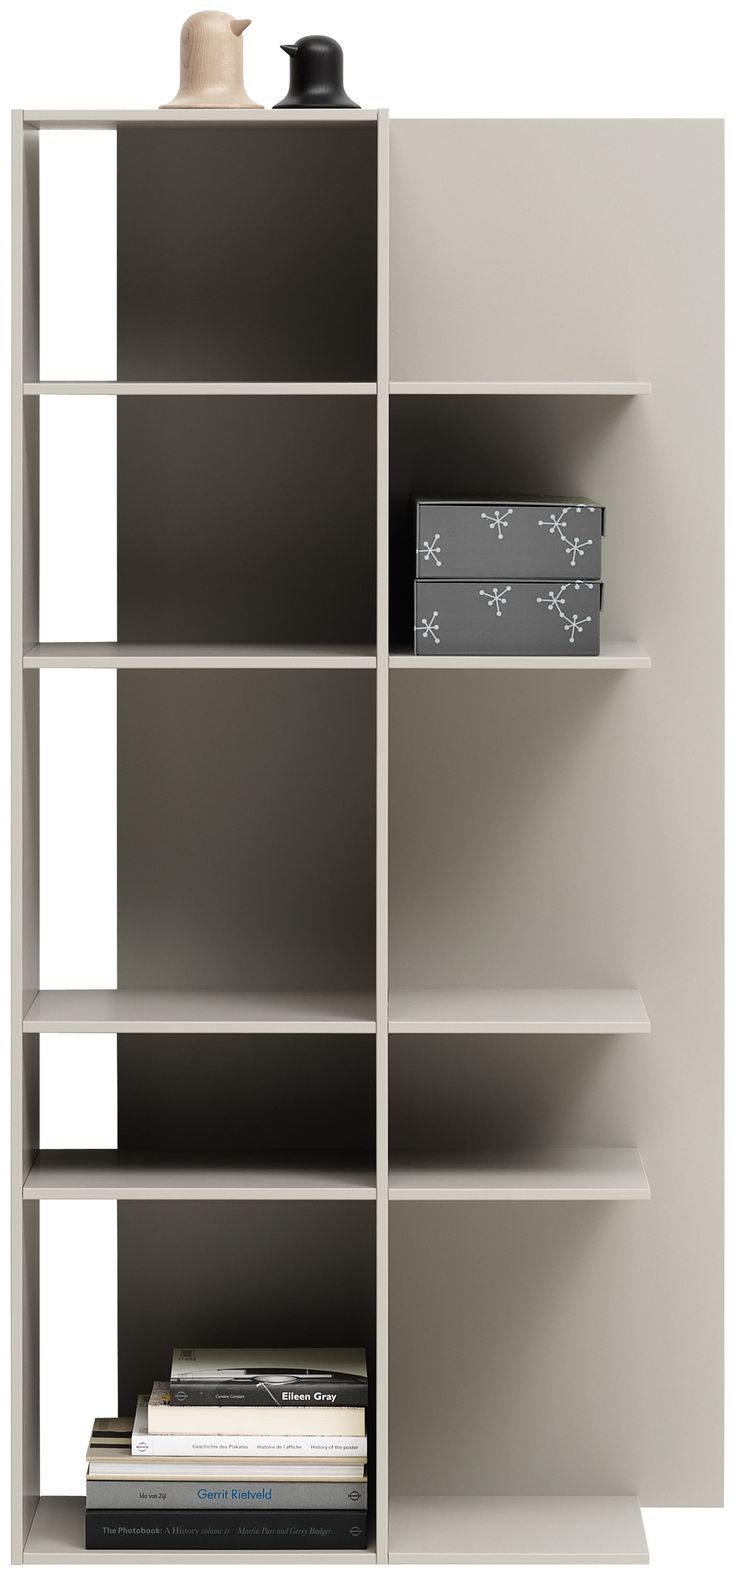 fusion wall mounted wall system, BoConcept, shelving, bookshelves, storage